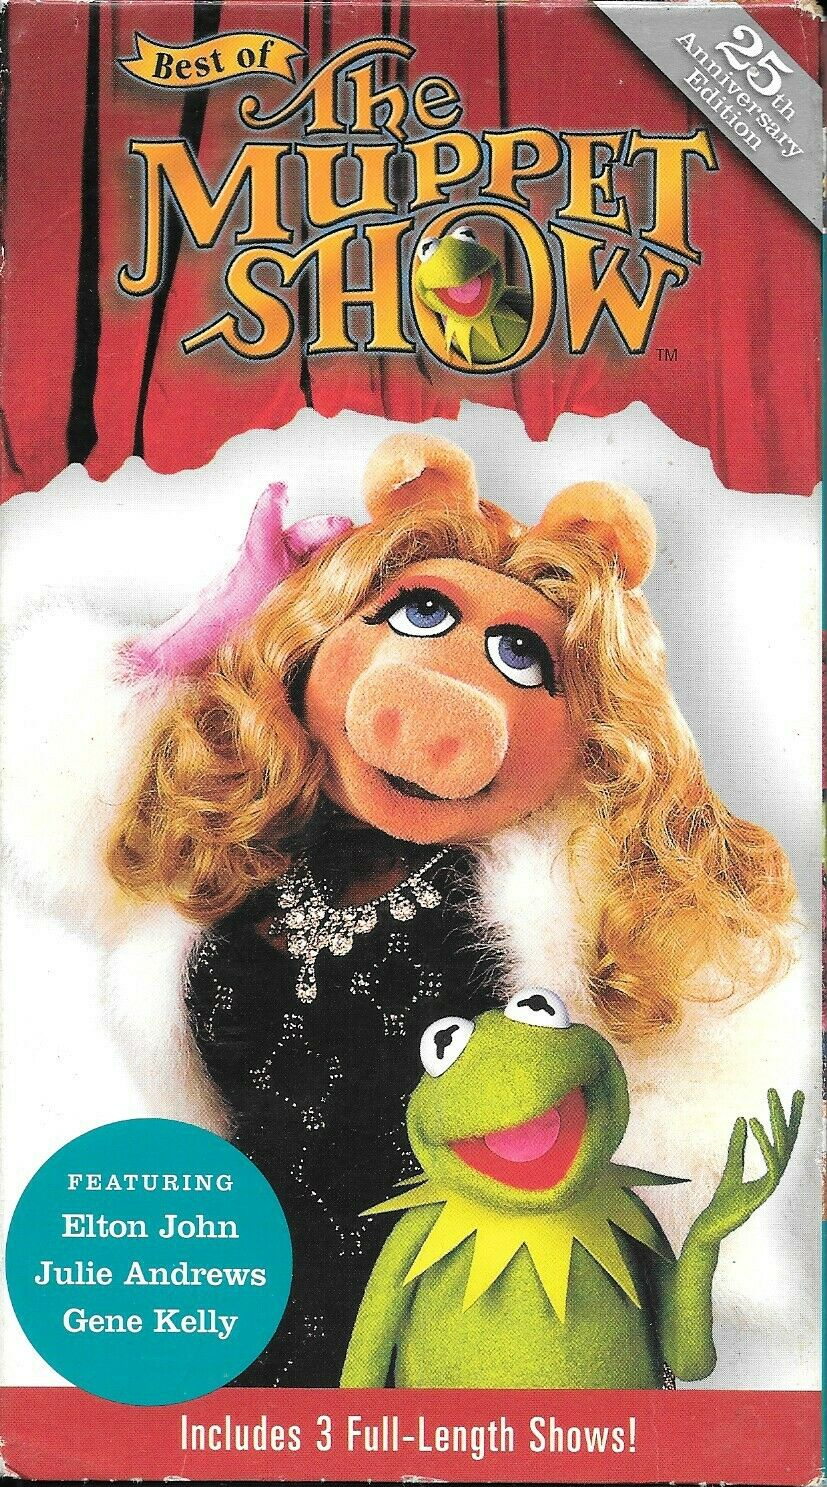 Best of the Muppet Show, Volume 1 (2002 VHS)